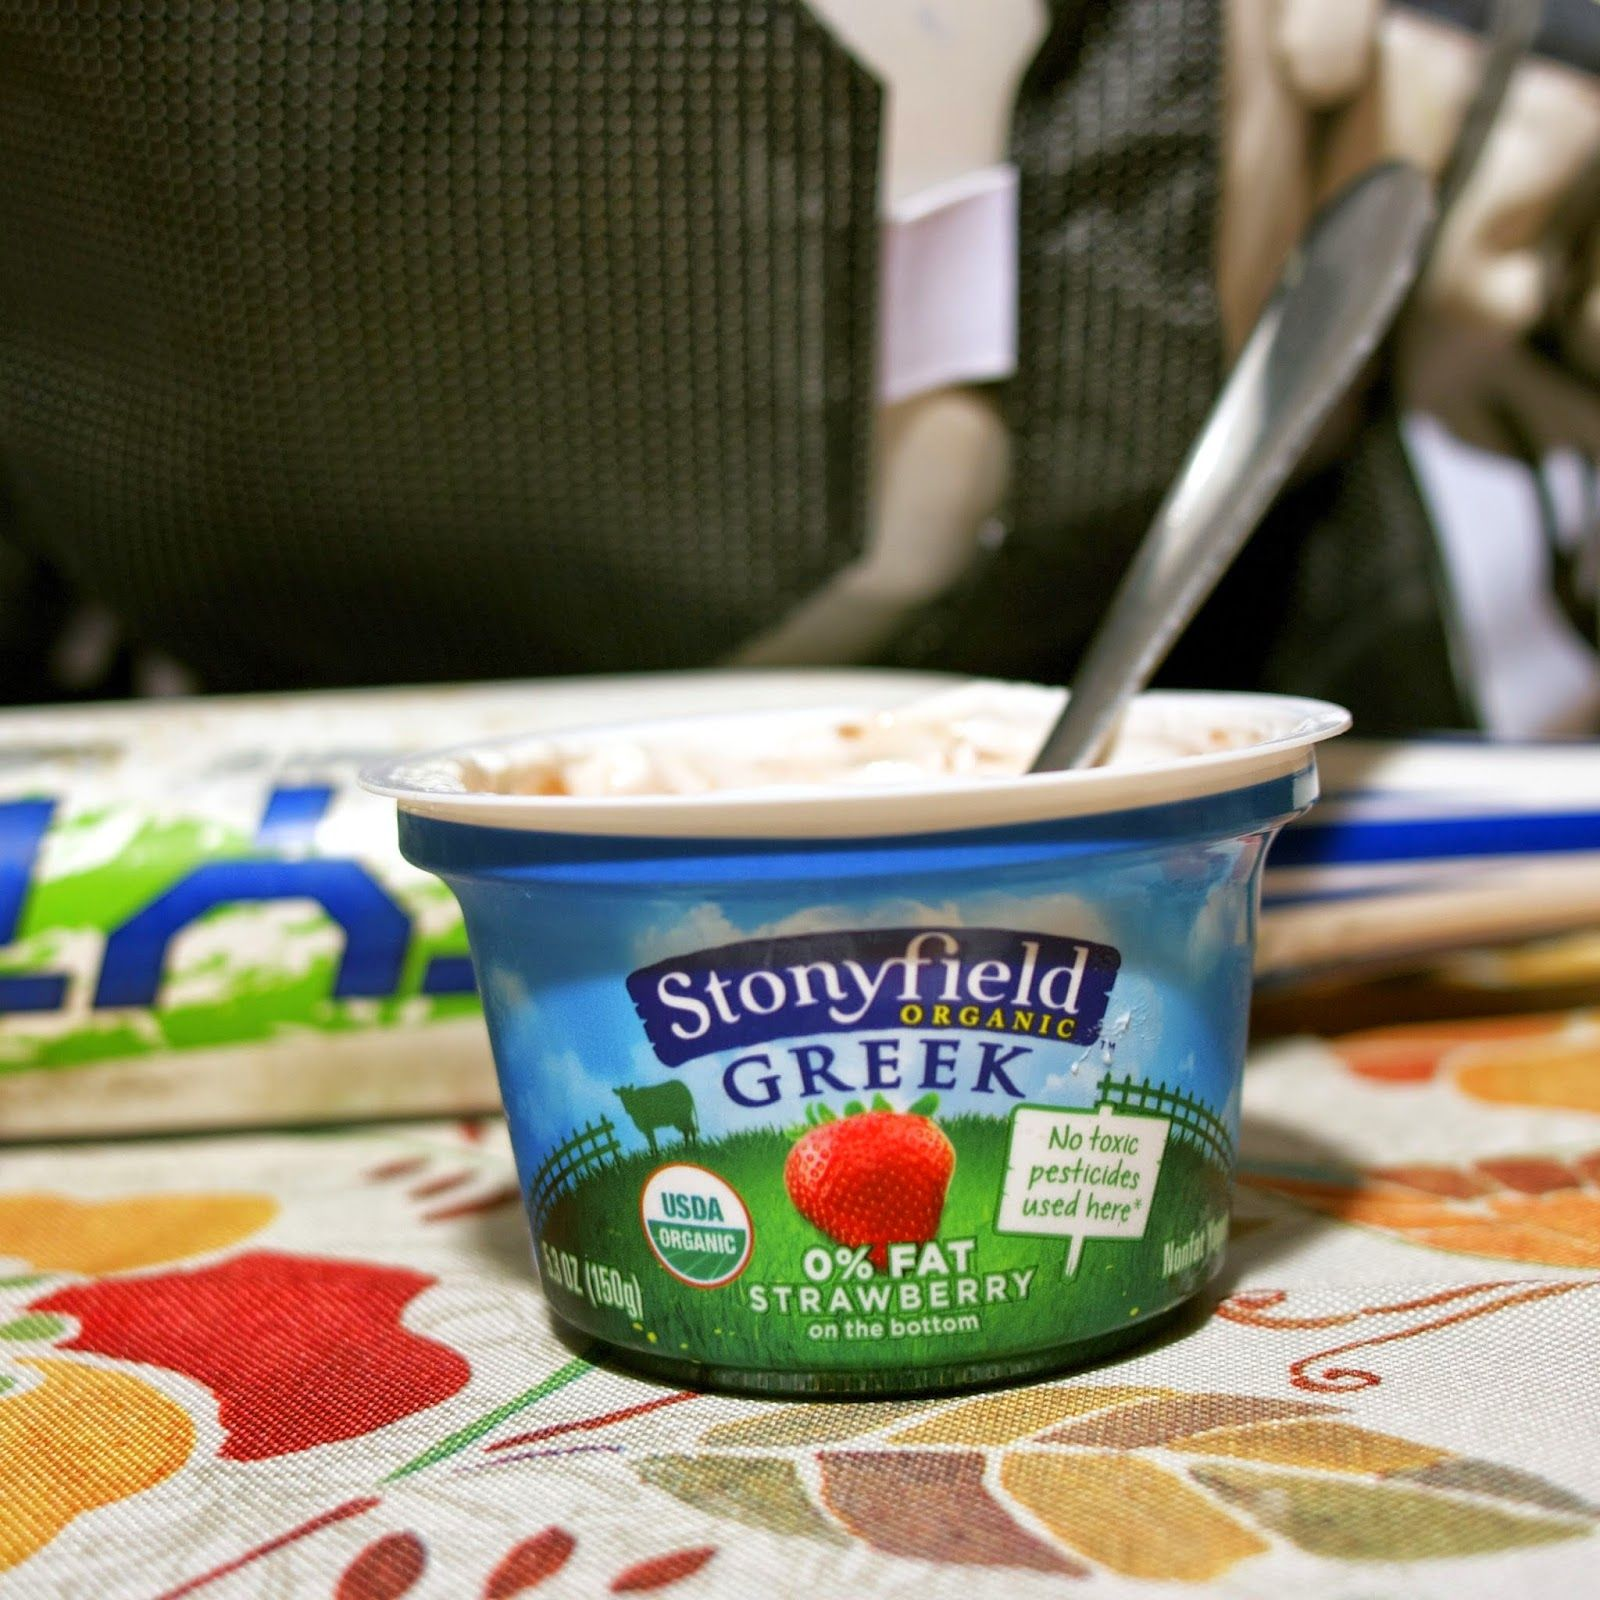 stonyfield greek yogurt as a snack simplelivingeating